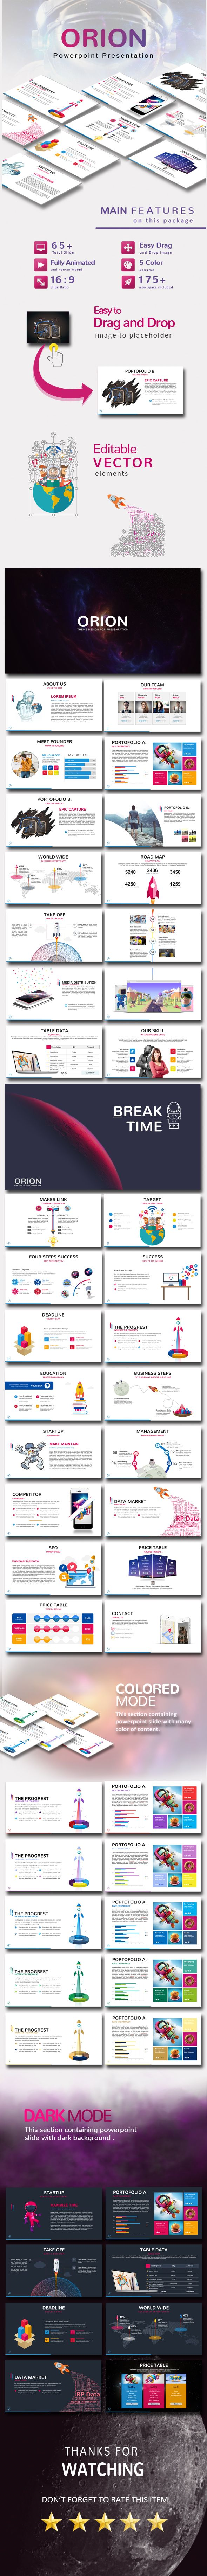 Orion PowerPoint Template #powerpoint #presentation Download : https://graphicriver.net/item/orion-powerpoint-template/17106577?s_rank=6?ref=BrandEarth